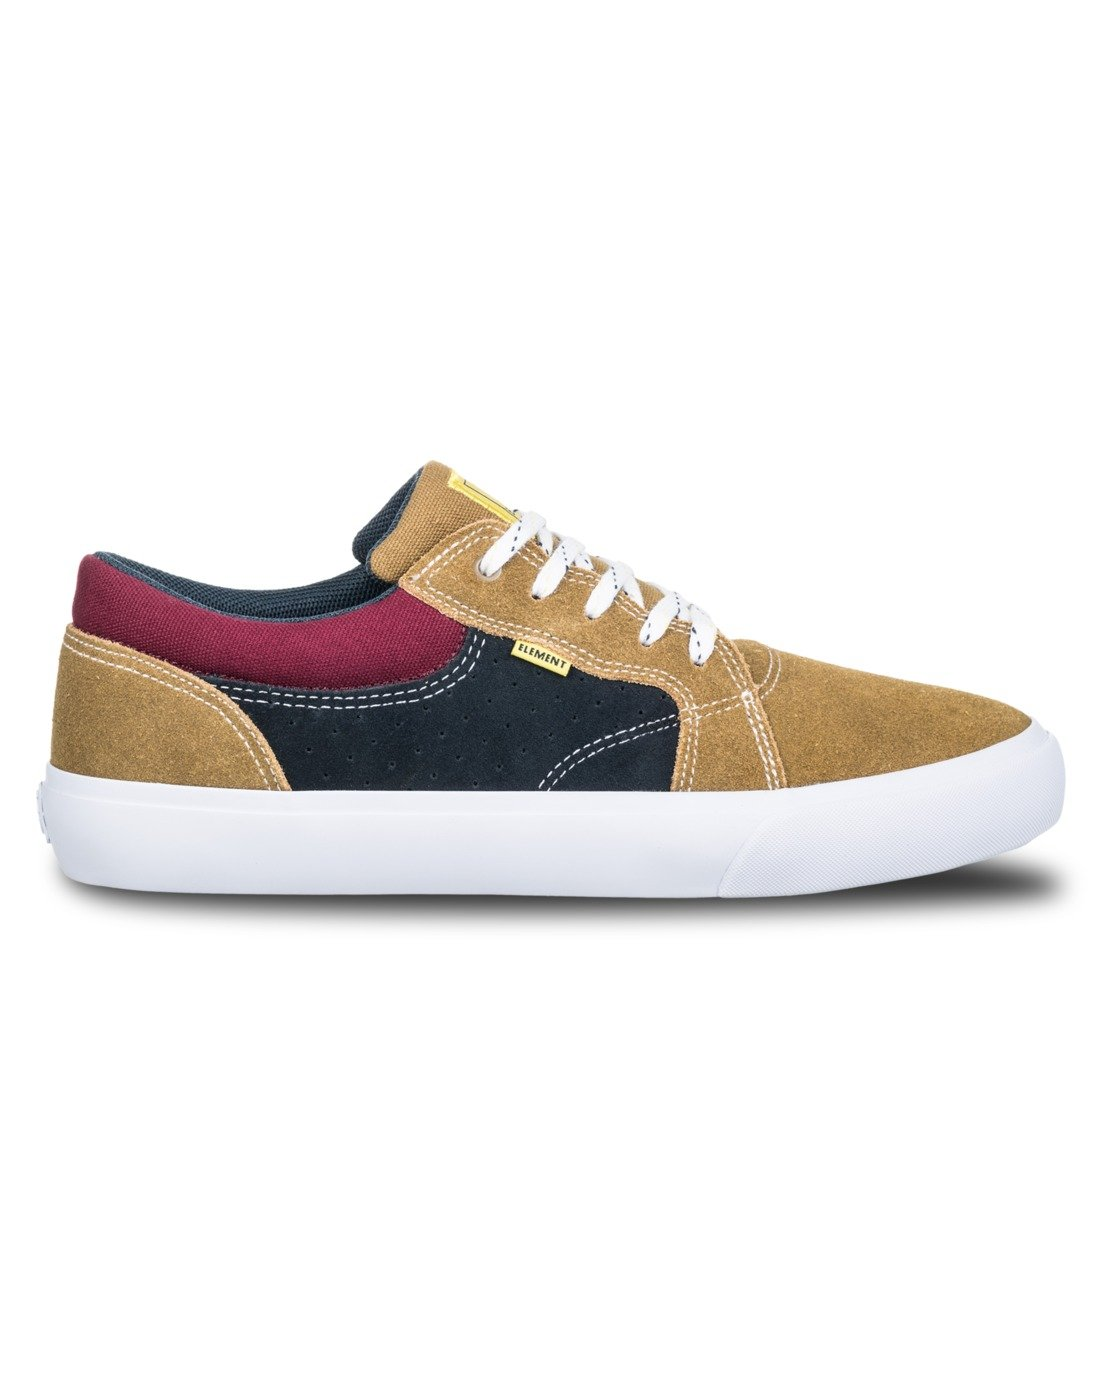 0 Wasso - Shoes for Men Brown W6WAS101 Element